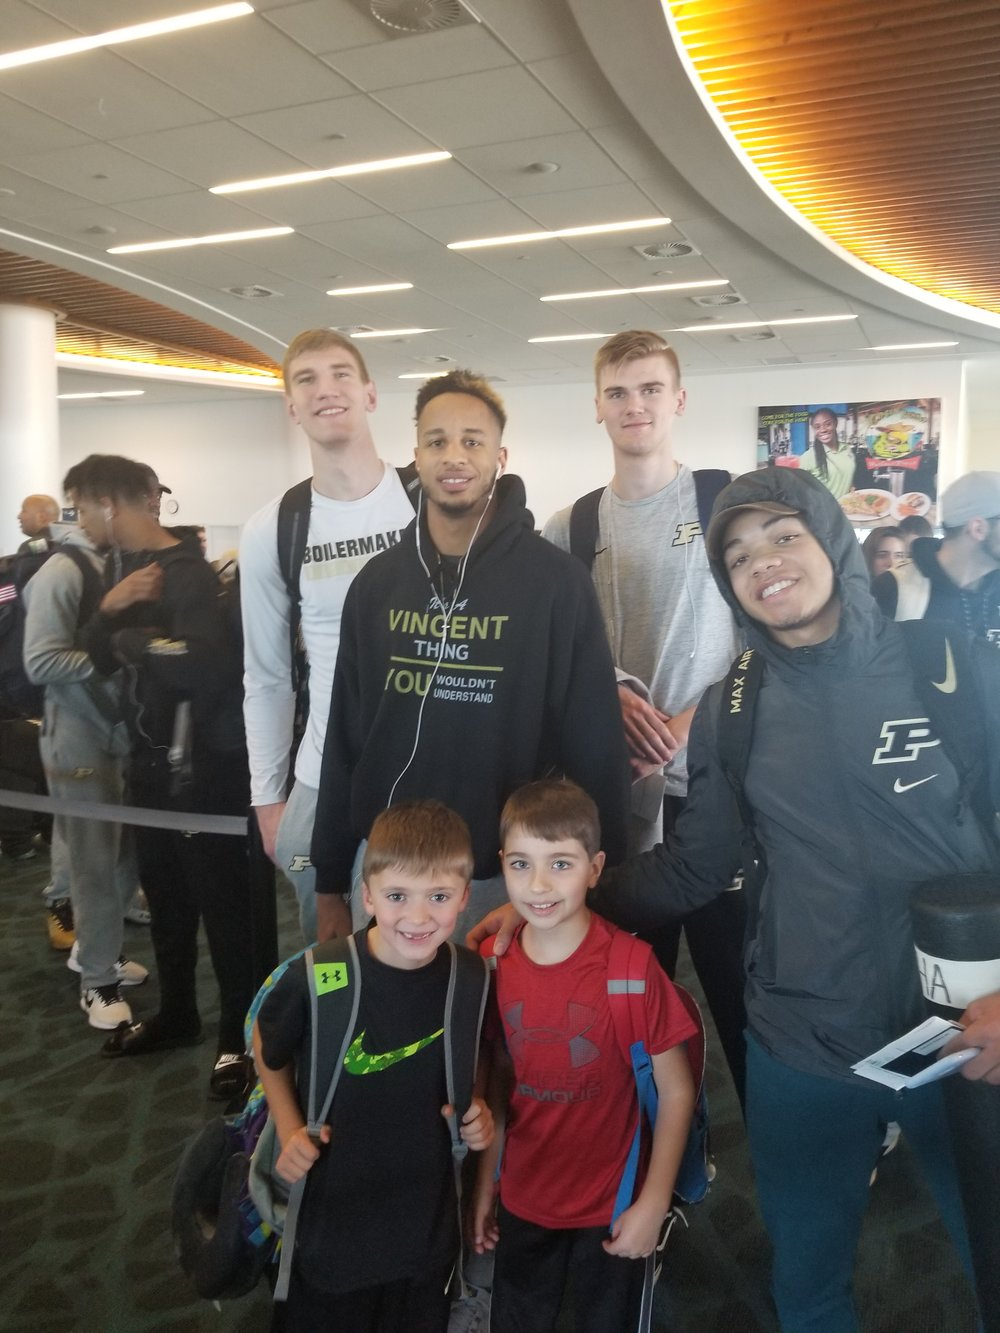 Purdue bball at airport.jpg